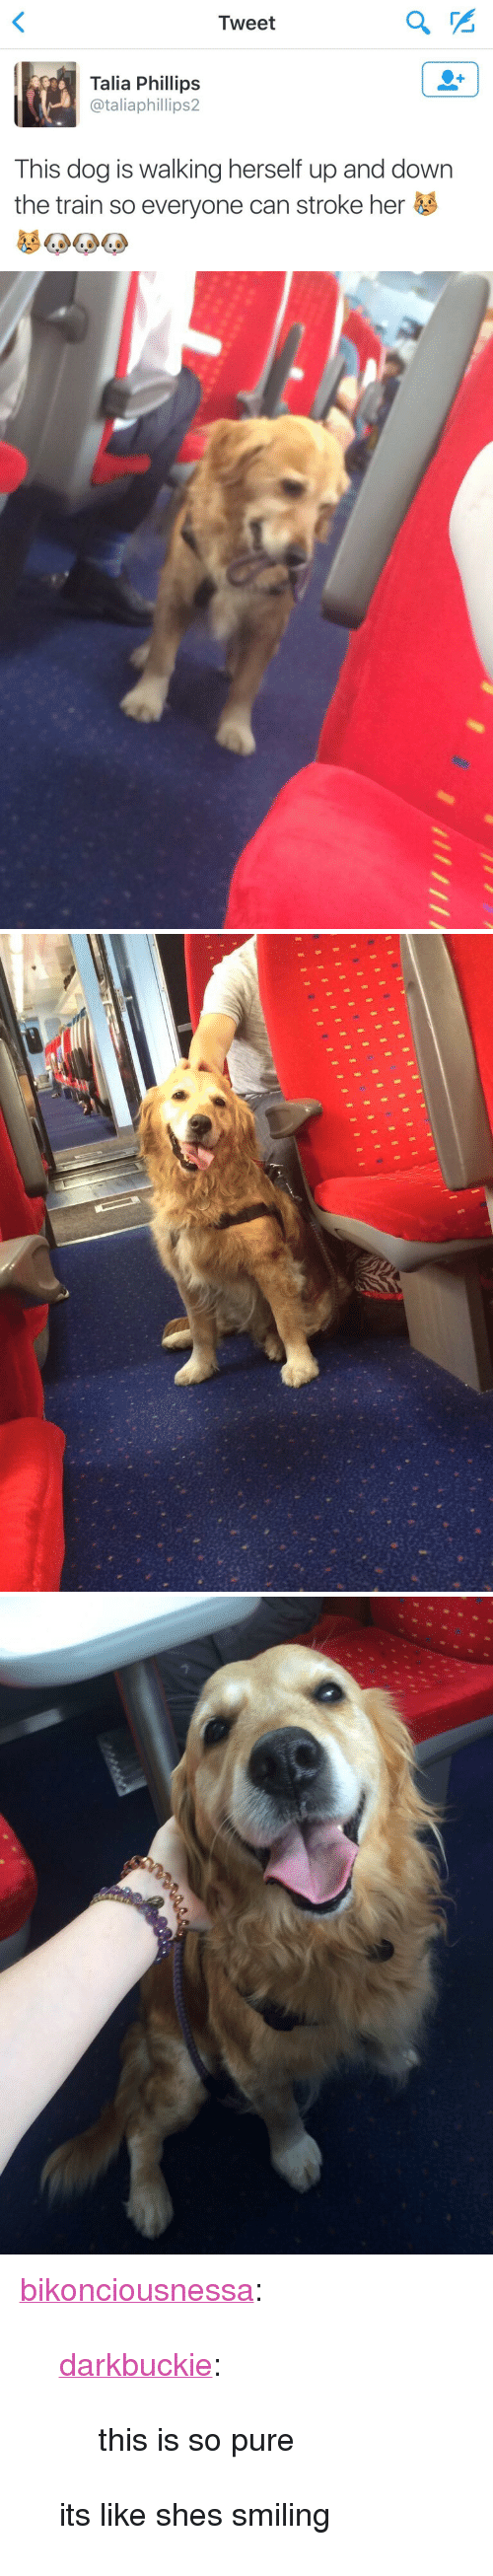 "Tumblr, Blog, and Http: Tweet  2  Talia Phillips  @taliaphillips2  This dog is walking herself up and down  the train so everyone can stroke her <p><a href=""http://bikonciousnessa.tumblr.com/post/149385251520/darkbuckie-this-is-so-pure-its-like-shes"" class=""tumblr_blog"">bikonciousnessa</a>:</p>  <blockquote><p><a class=""tumblr_blog"" href=""http://darkbuckie.tumblr.com/post/147946761711"">darkbuckie</a>:</p> <blockquote> <p>this is so pure</p> </blockquote>  <p>its like shes smiling</p></blockquote>"